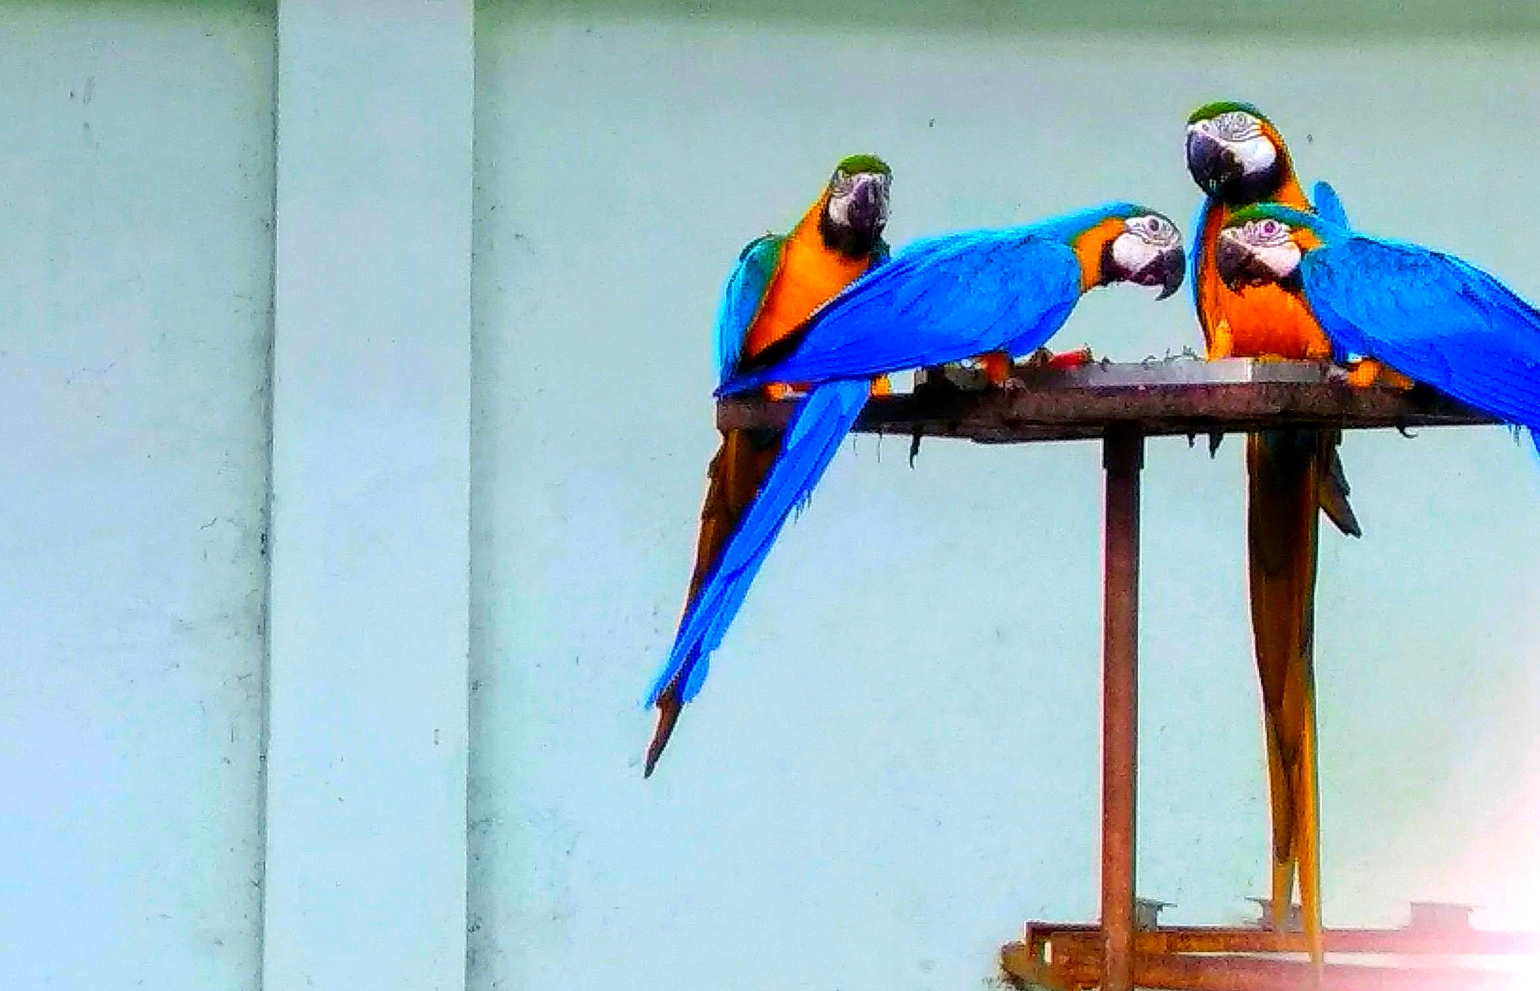 The Wilderness - A picture of Macaws having their food